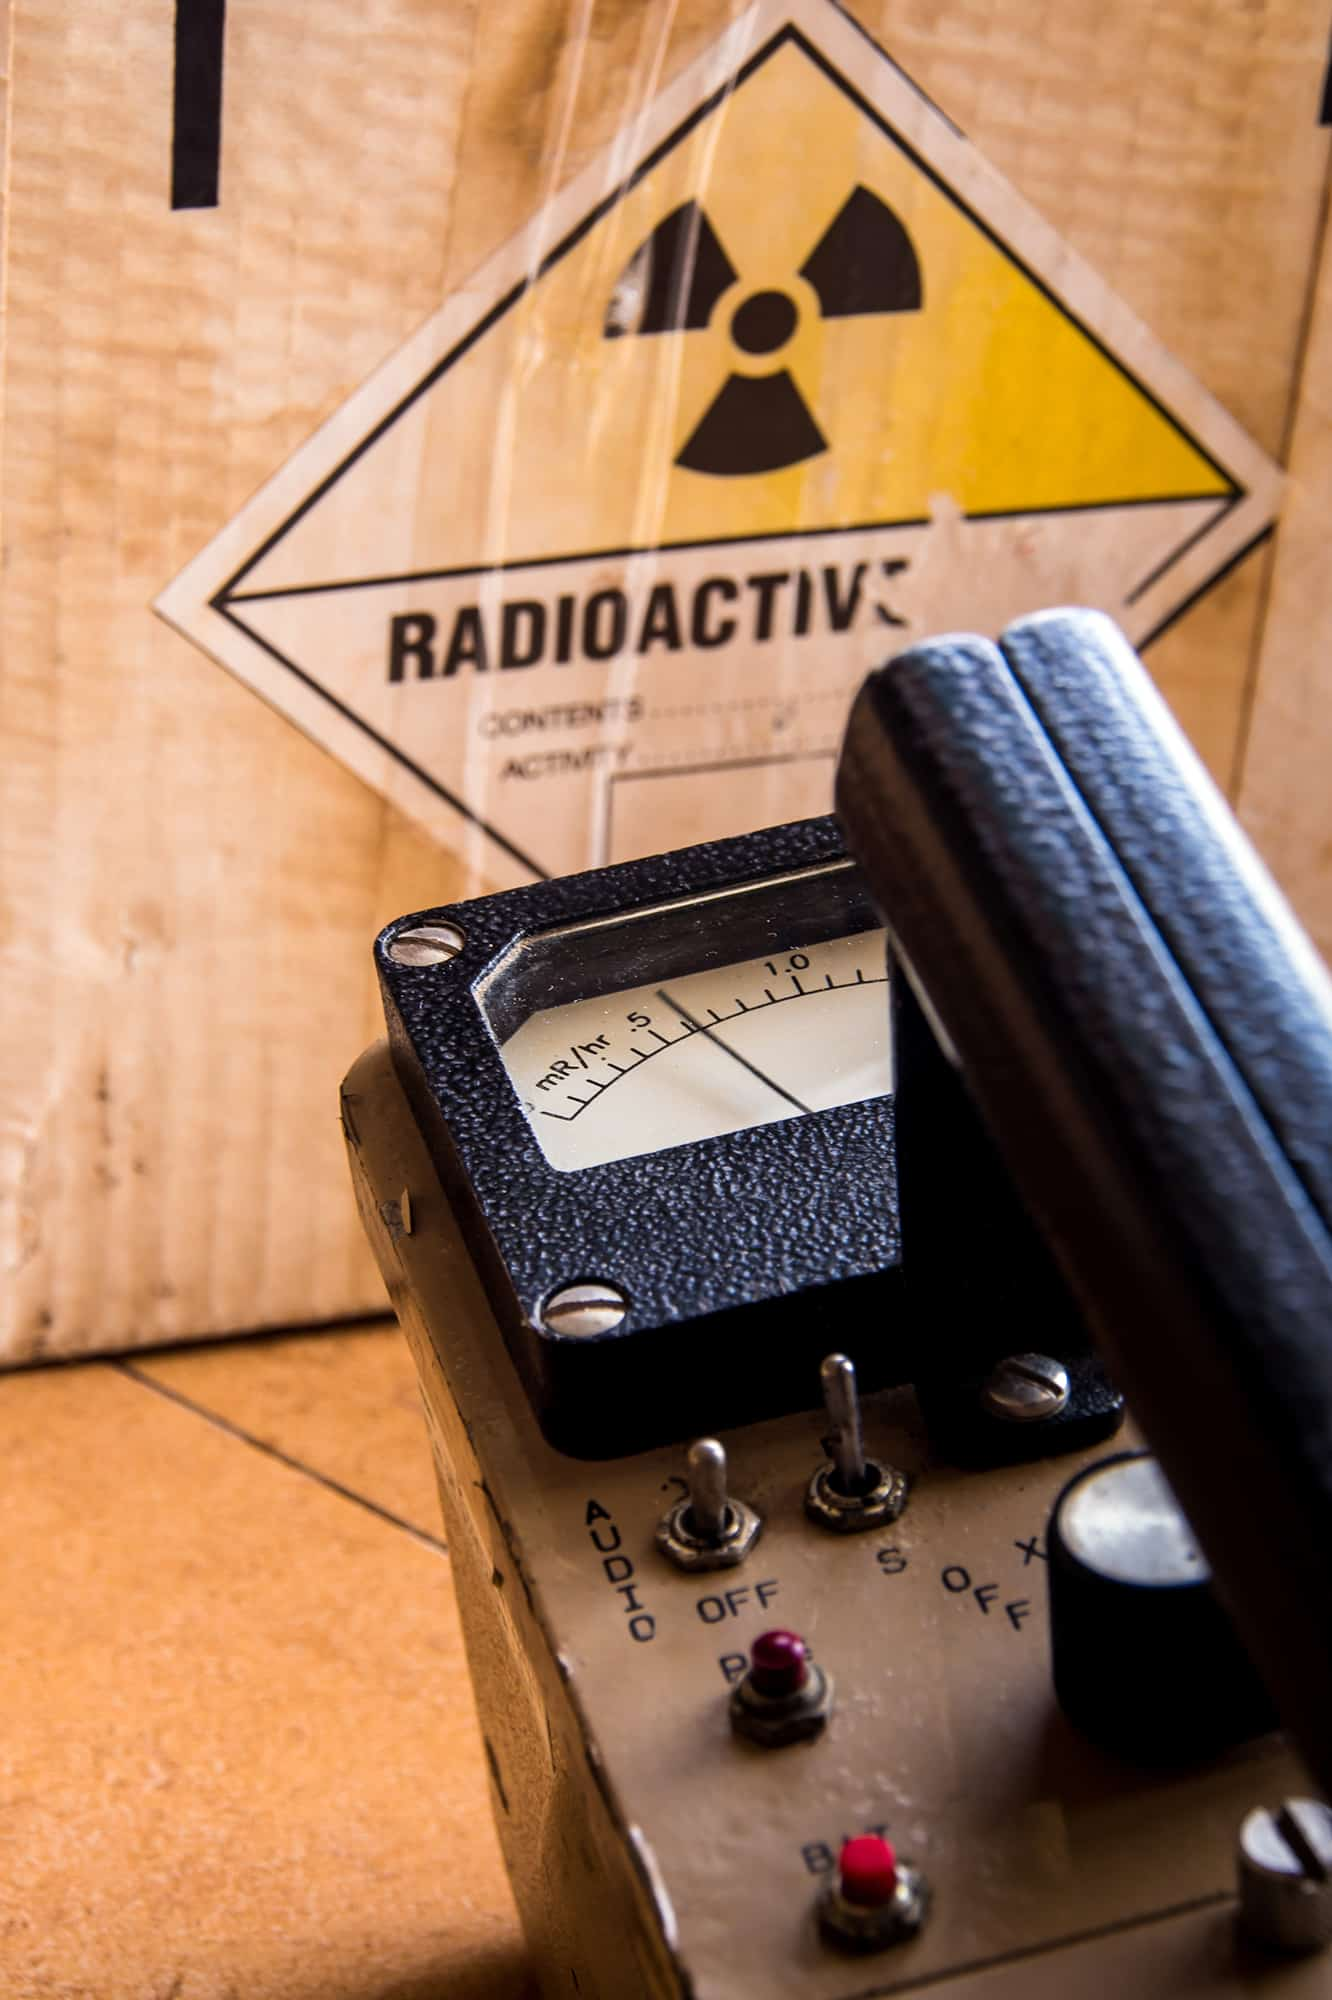 A geiger Counter being used to check the radiactivity of a box